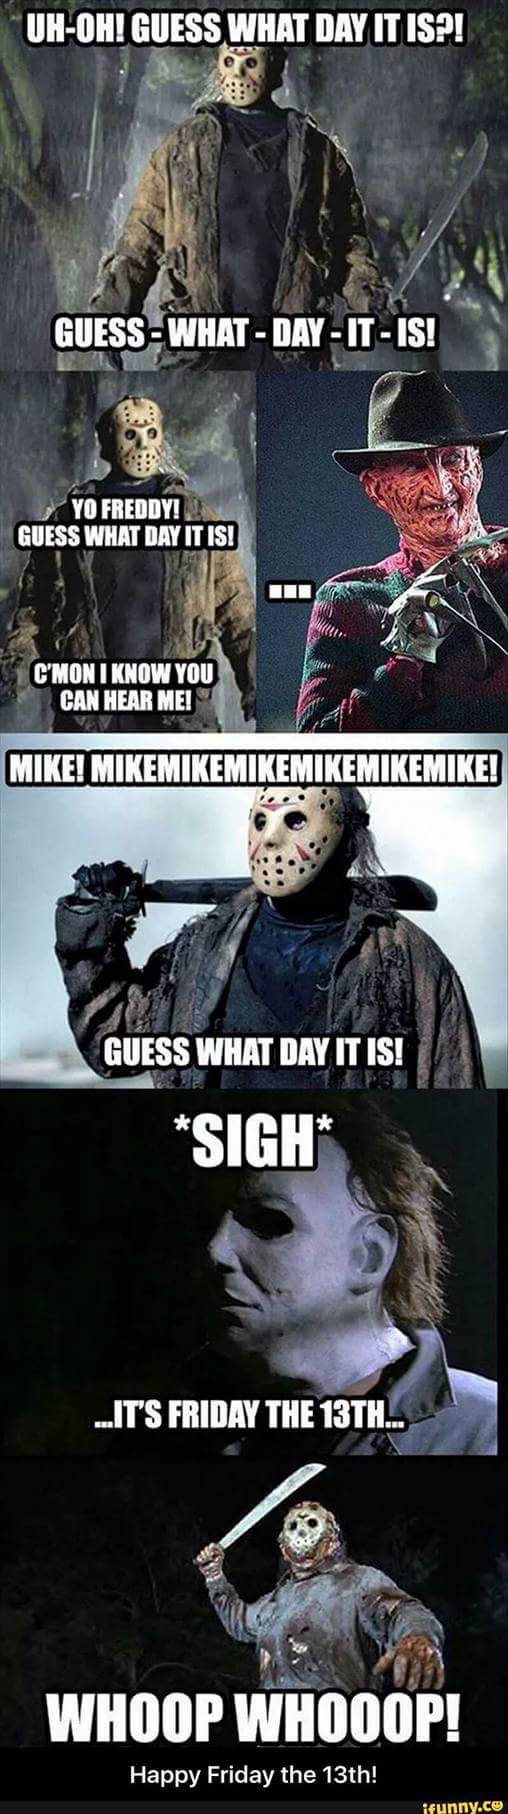 90b5e0bc5334368a671bb7cf3a1eb679 silly friday the 13th meme haha jason freddy and michael myers